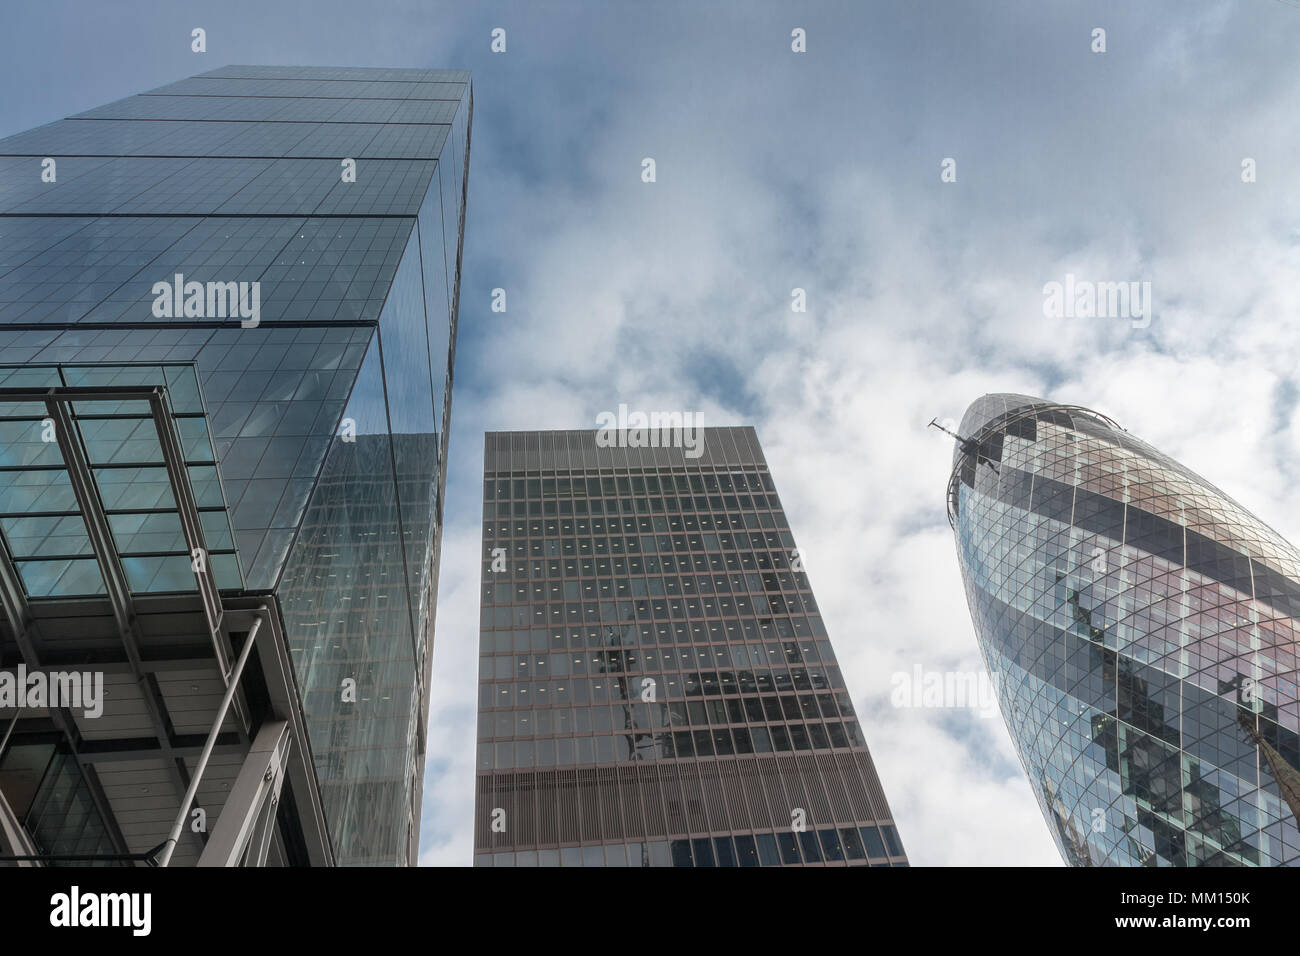 Ville de LONDON, LONDON-Septembre 7,2017:Le Leadenhall Building, St Helens et gratte-ciel 30 St Mary Axe le 7 septembre 2017 à Londres. Photo Stock